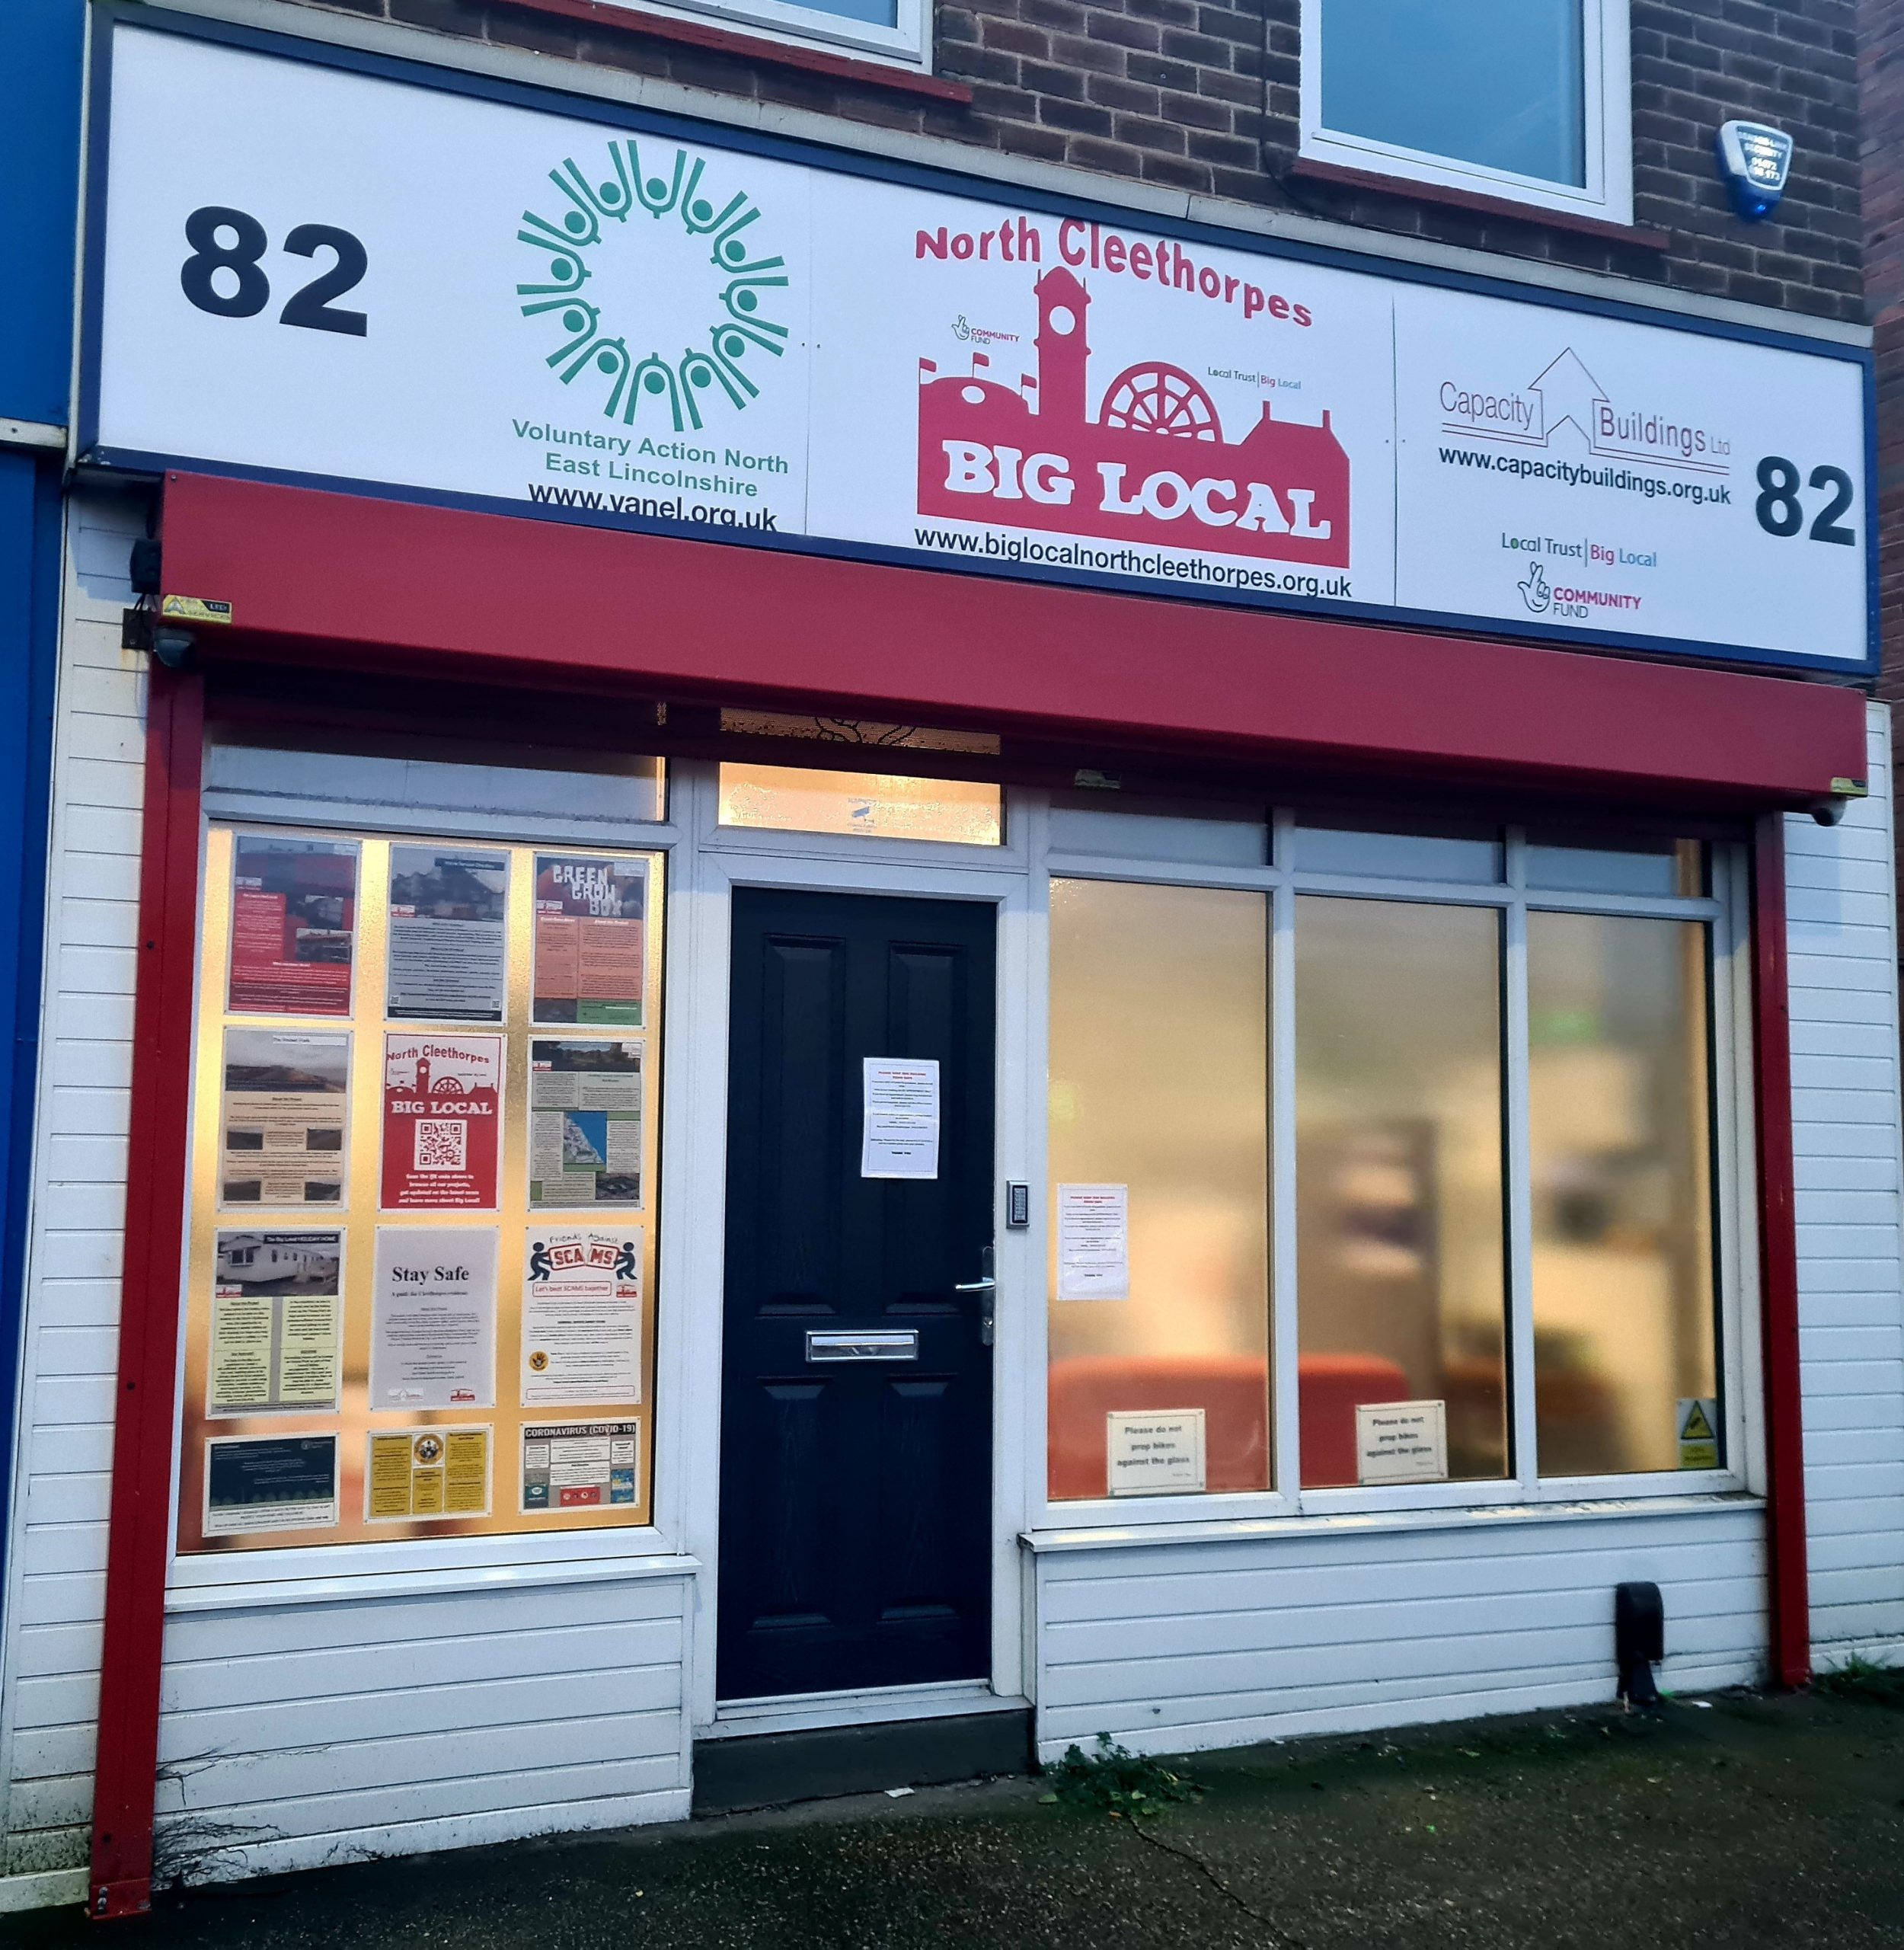 We own 82 Grimsby Road in Cleethorpes on behalf of Big Local North Cleethorpes and the local community. We help manage and run the building as a micro community hub.